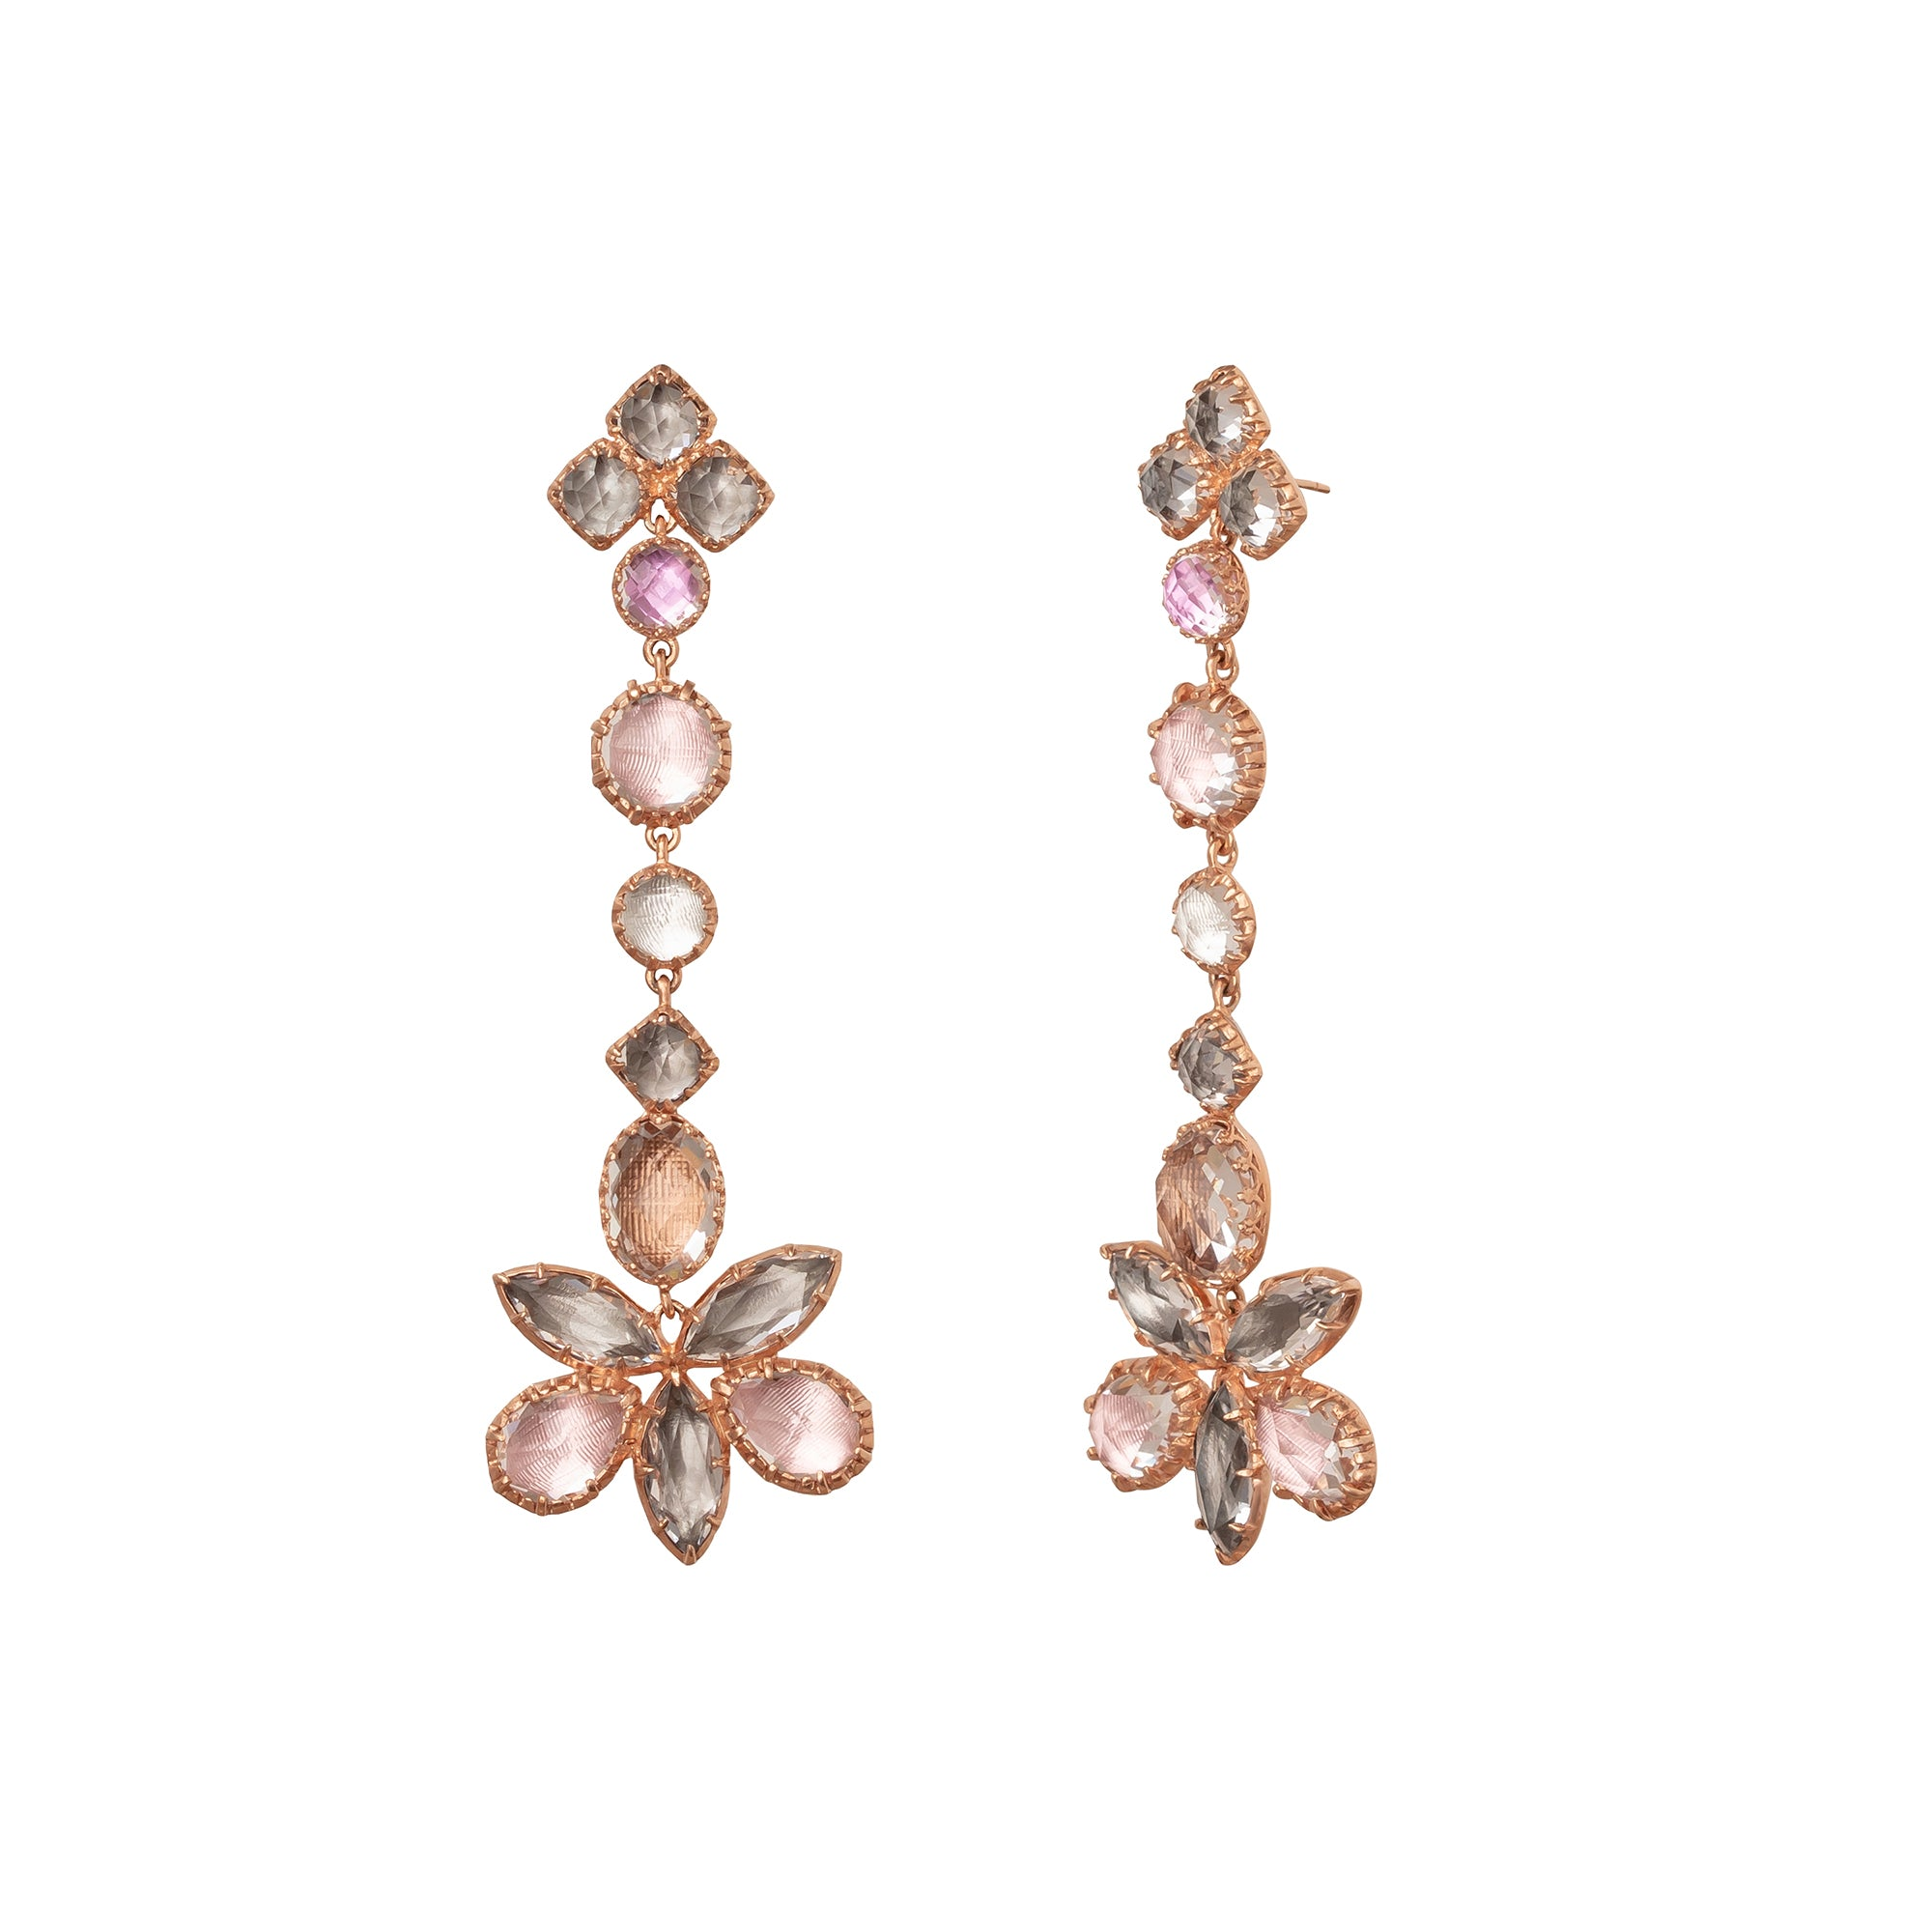 Sadie Shoulder Cluster Earrings